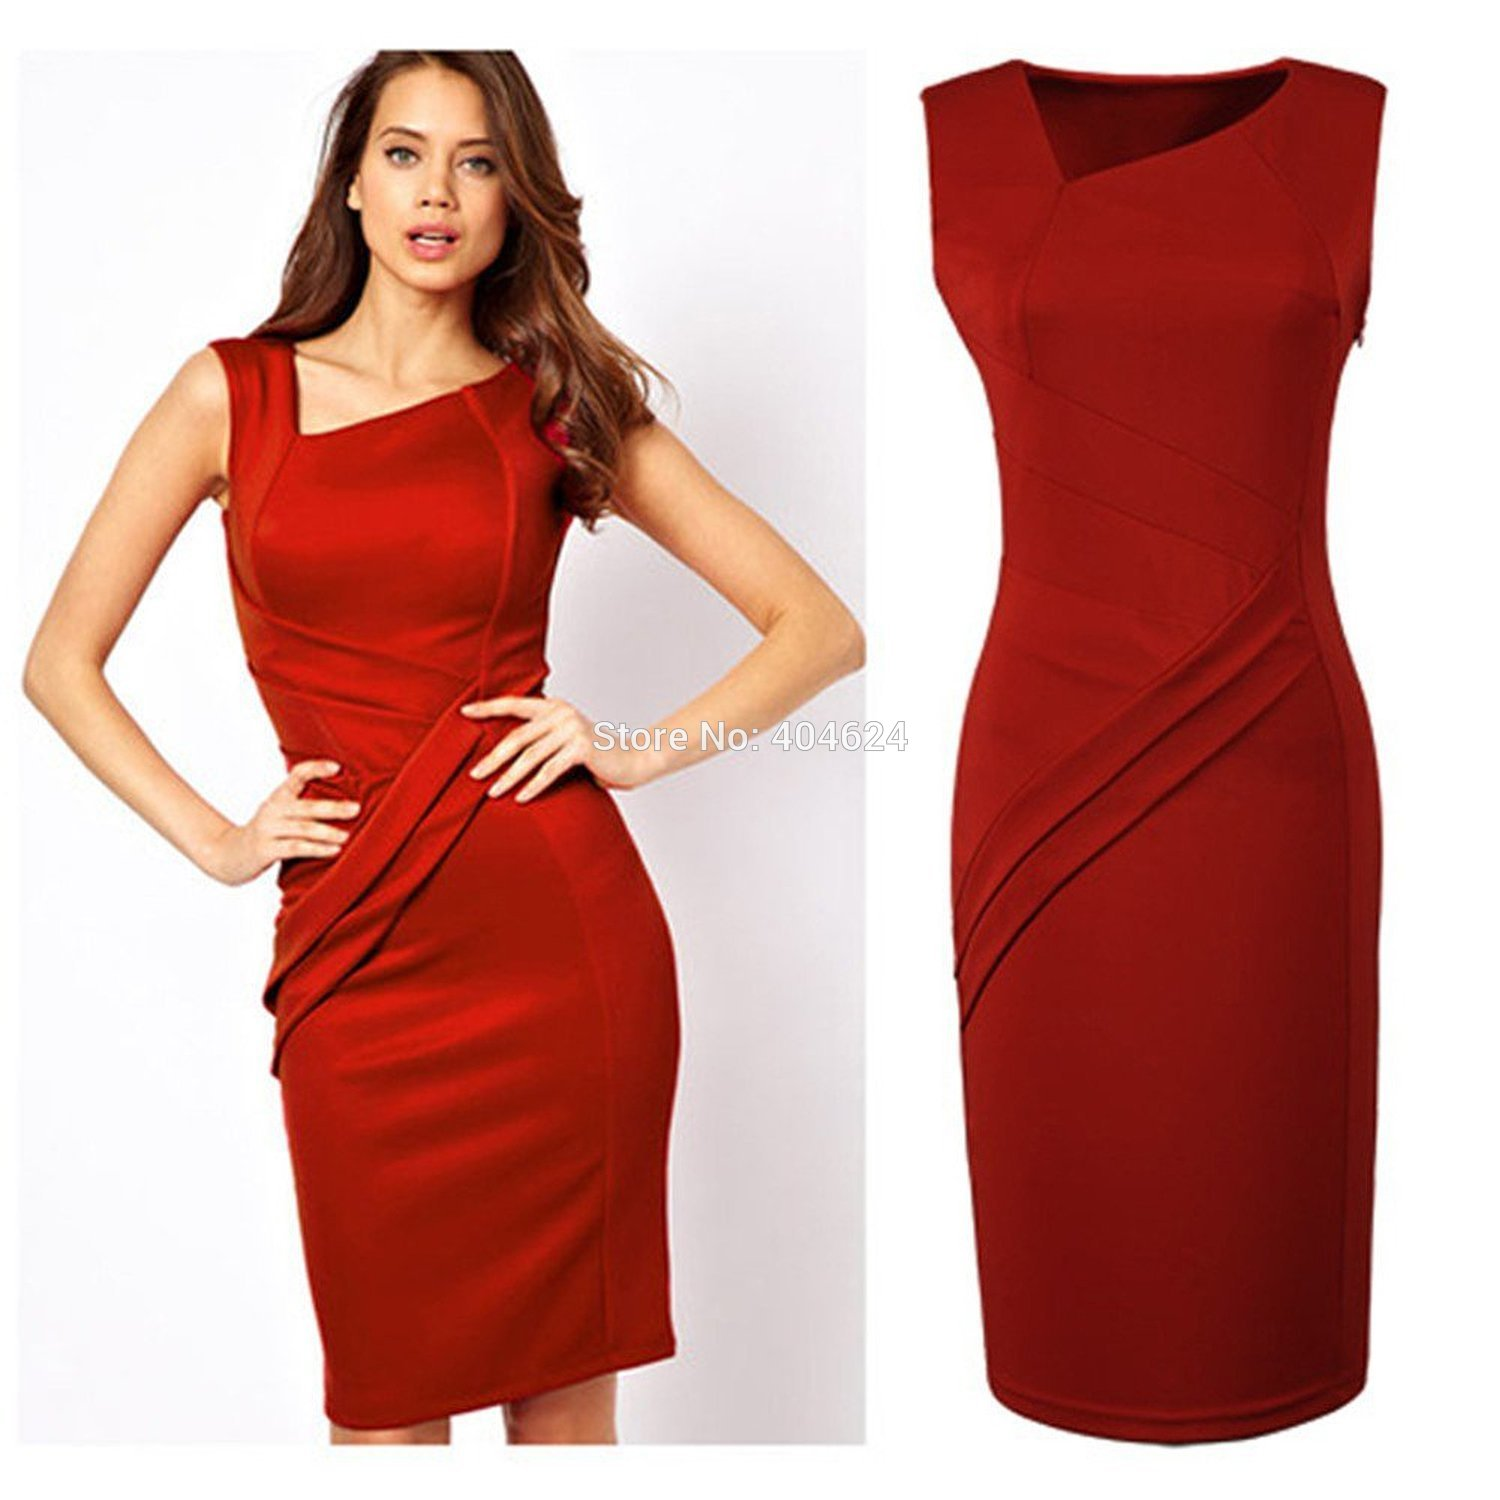 classy dresses for work ideas style jeans With classy dresses for ladies